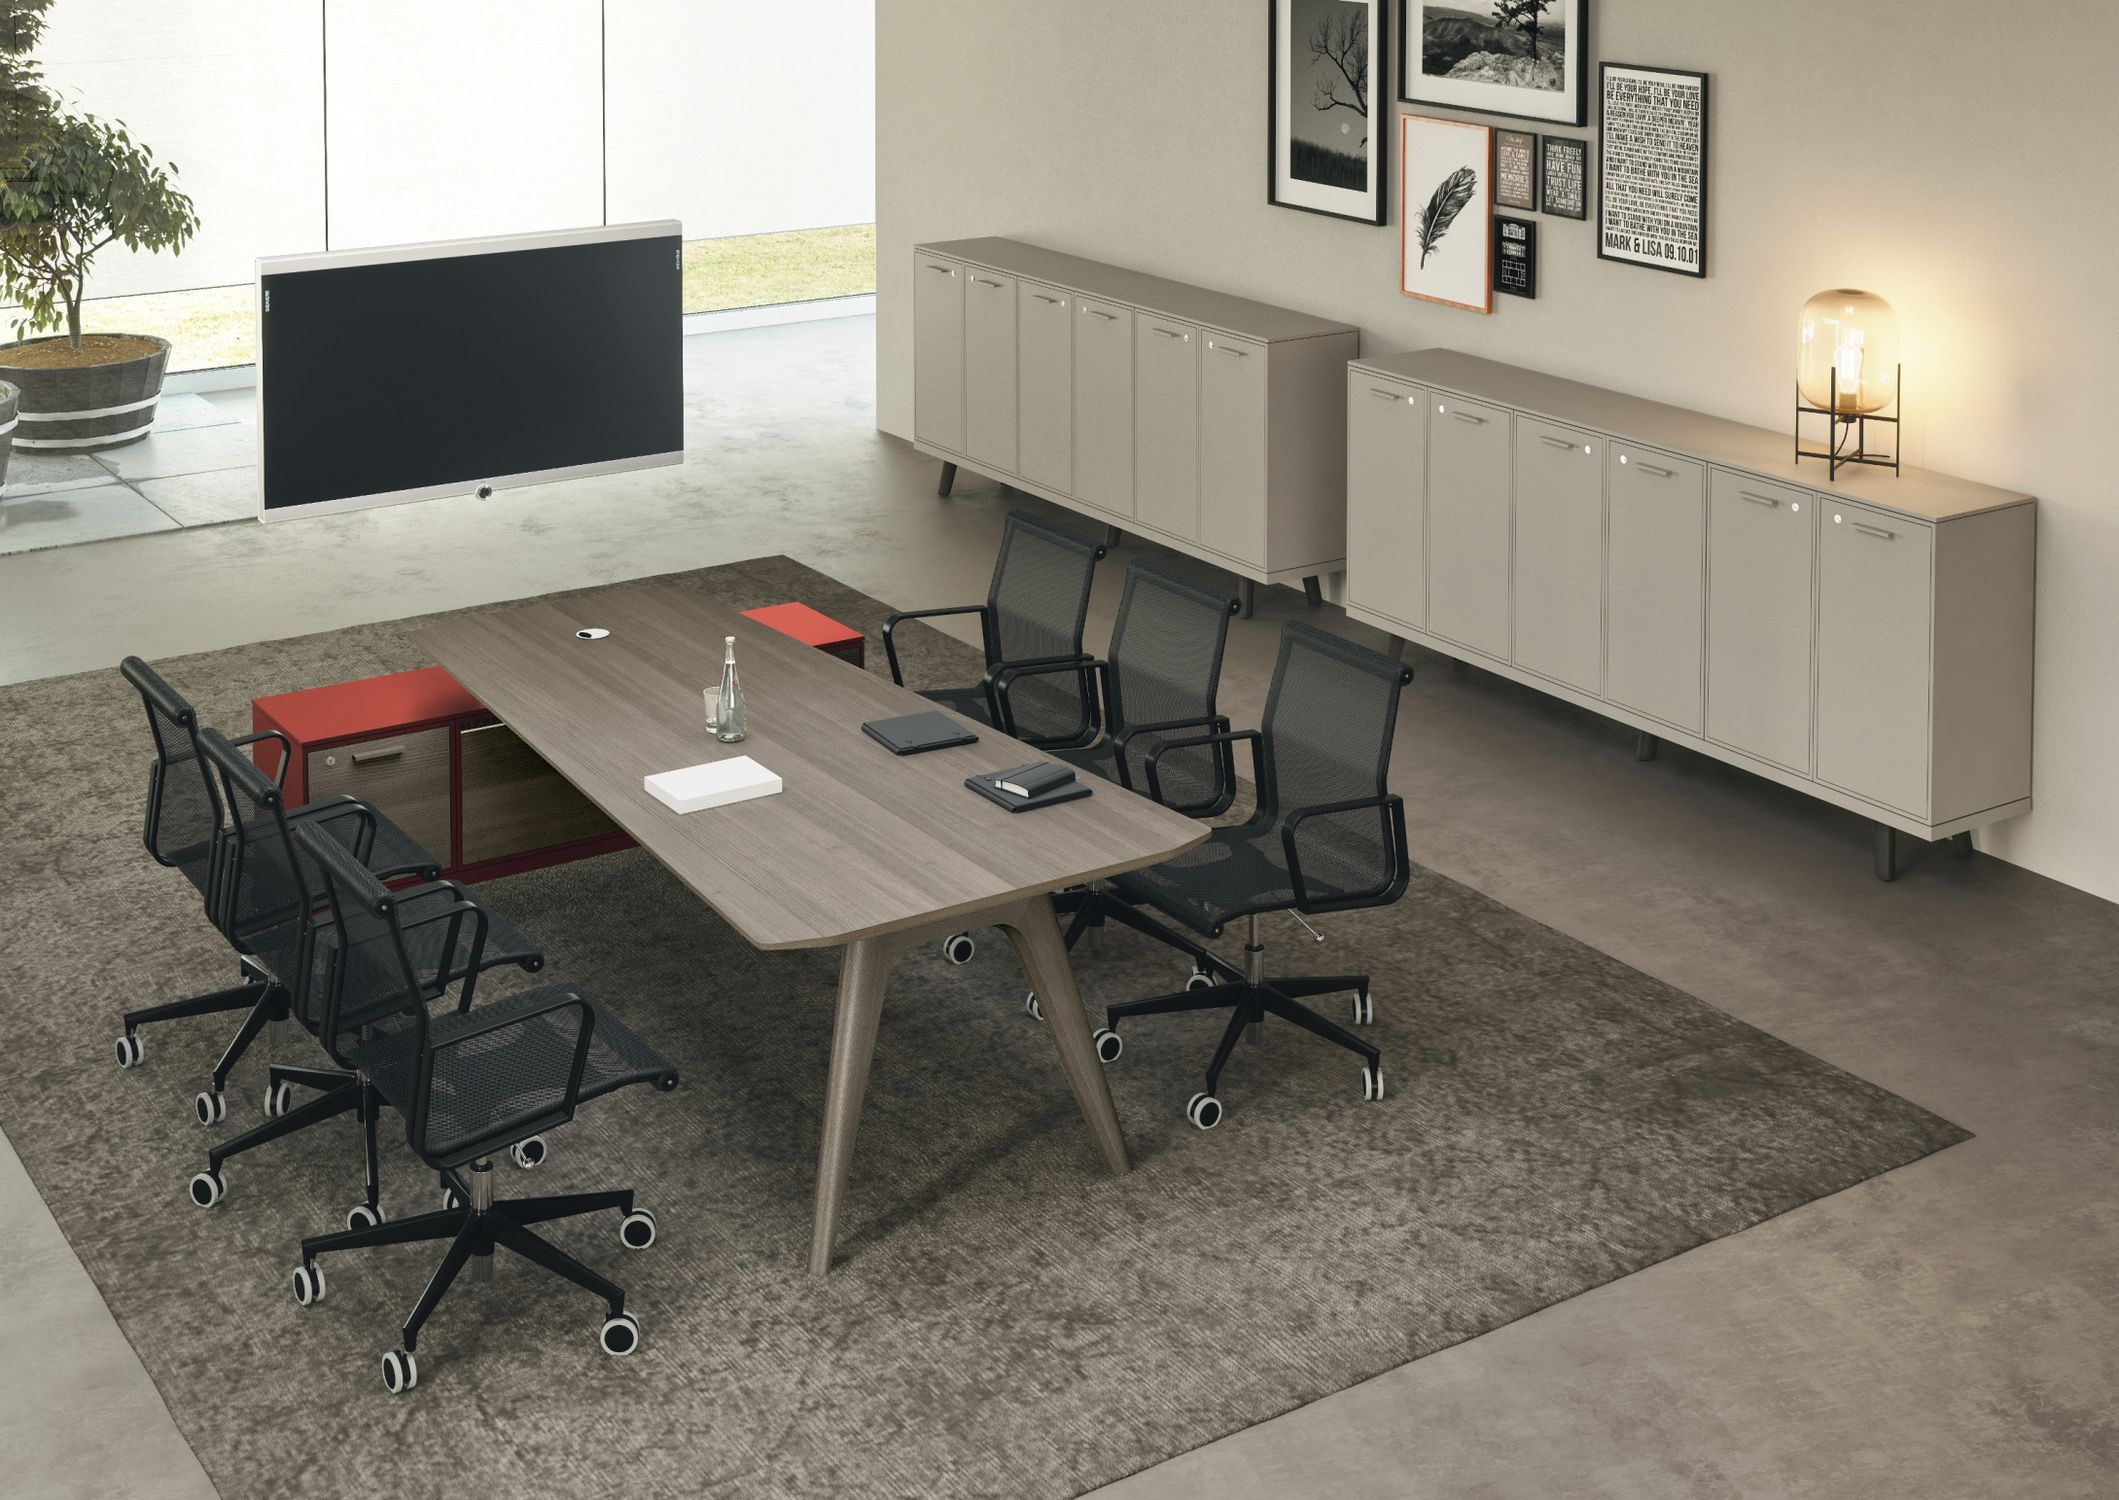 ... Contemporary Boardroom Table / Glass / Wood Veneer / Round ...